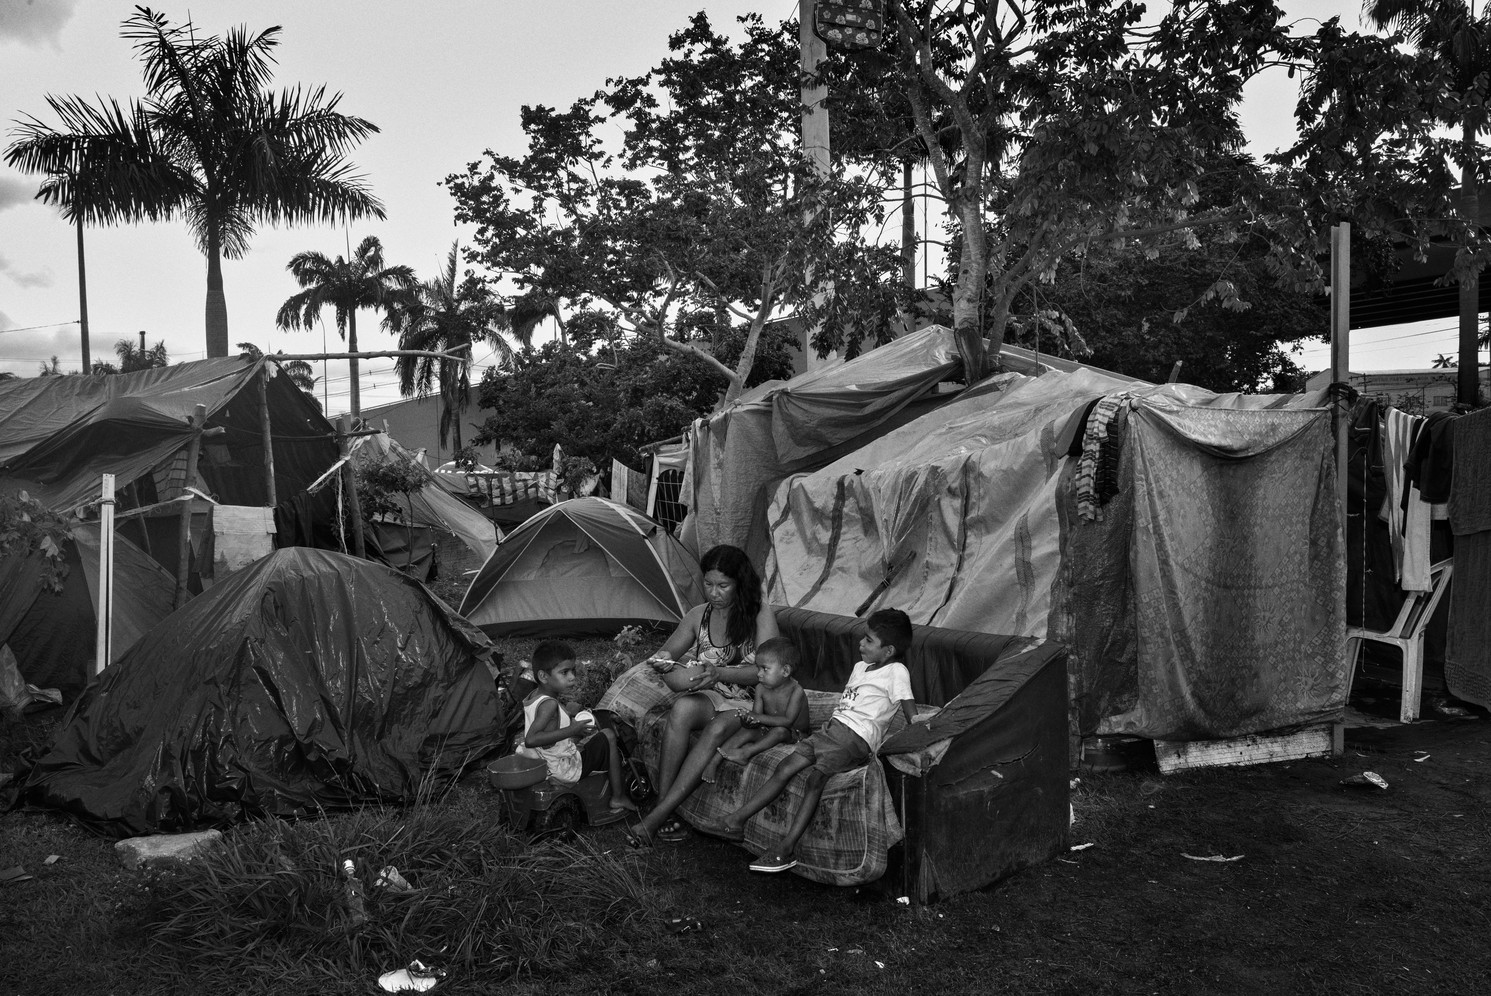 A family of Venezuelan migrants at a homeless encampment in Manaus next to the city bus station. Thousands of n migrants have sought refuge in Manaus in recent years. The city is nearly 1000km distance from the border with Venezuela a journey which many migrants make on foot. Arriving in Manaus, they suffer with unemployment and housing.